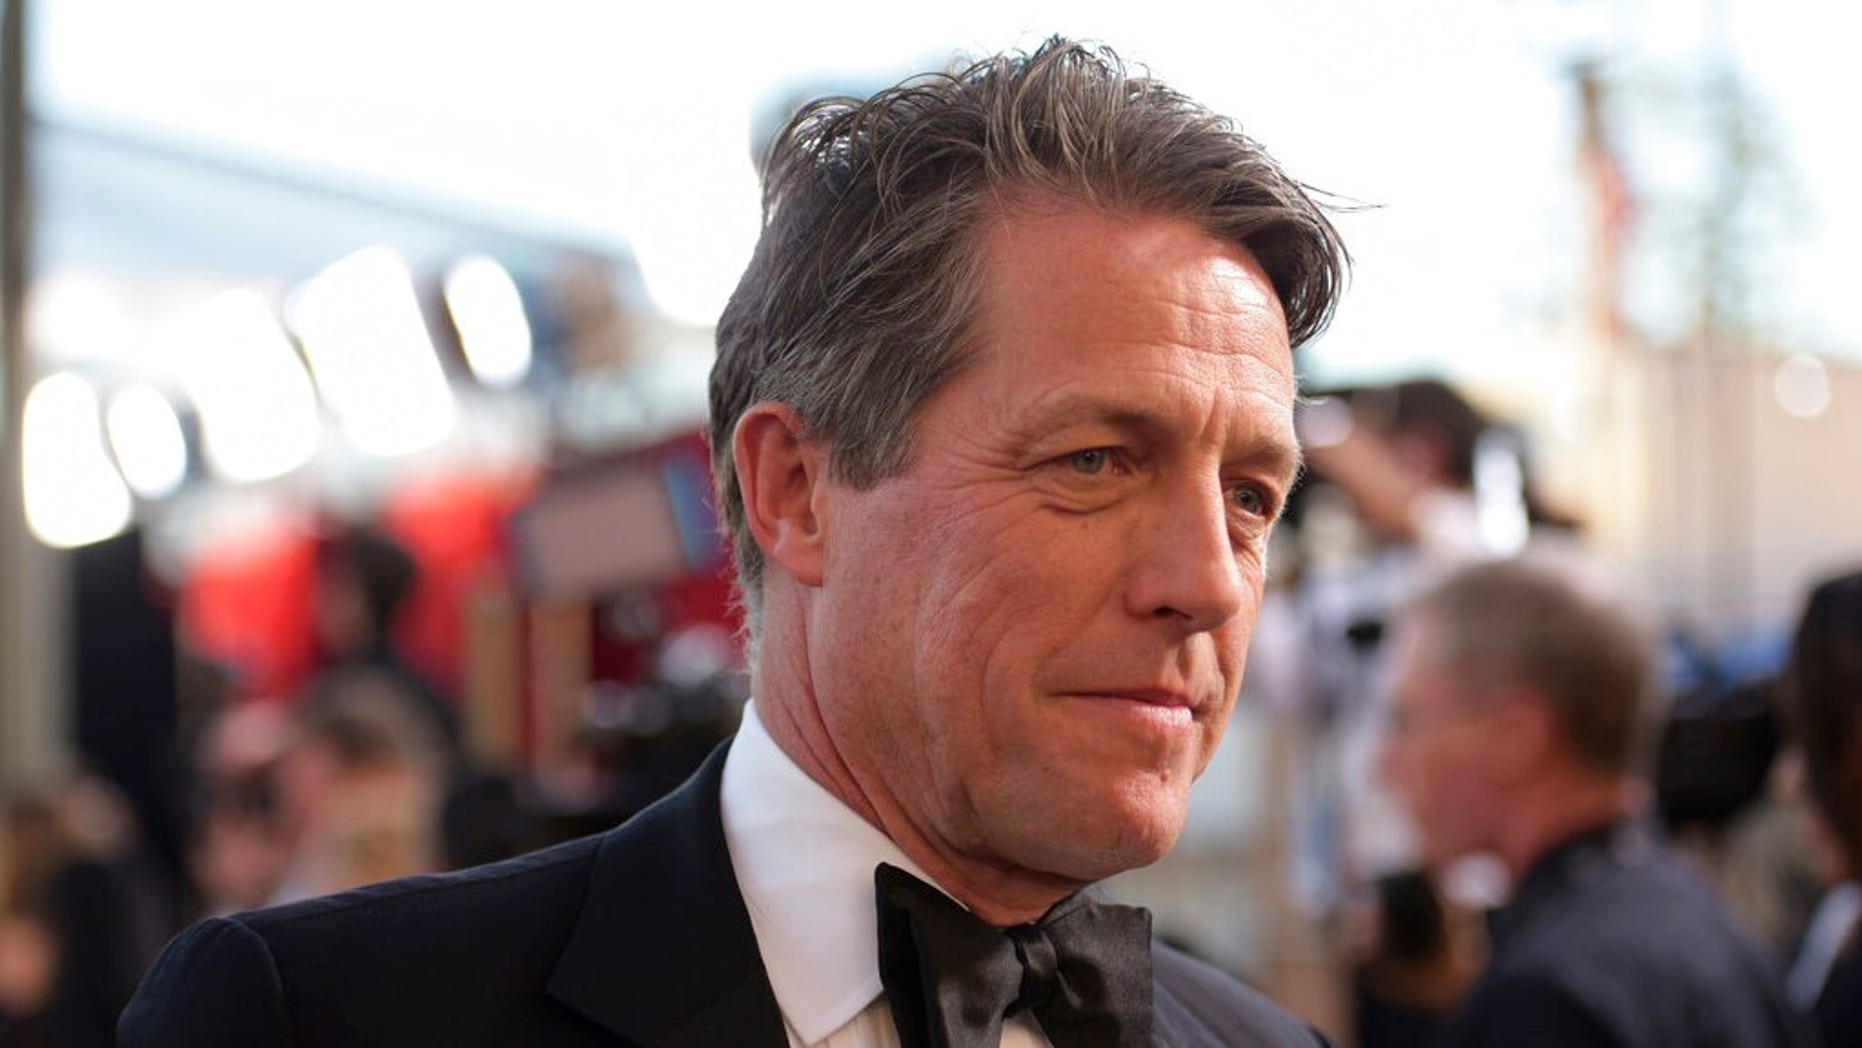 British actor Hugh Grant tweeted a plea to the thief who broke into his vehicle tiring Sunday.